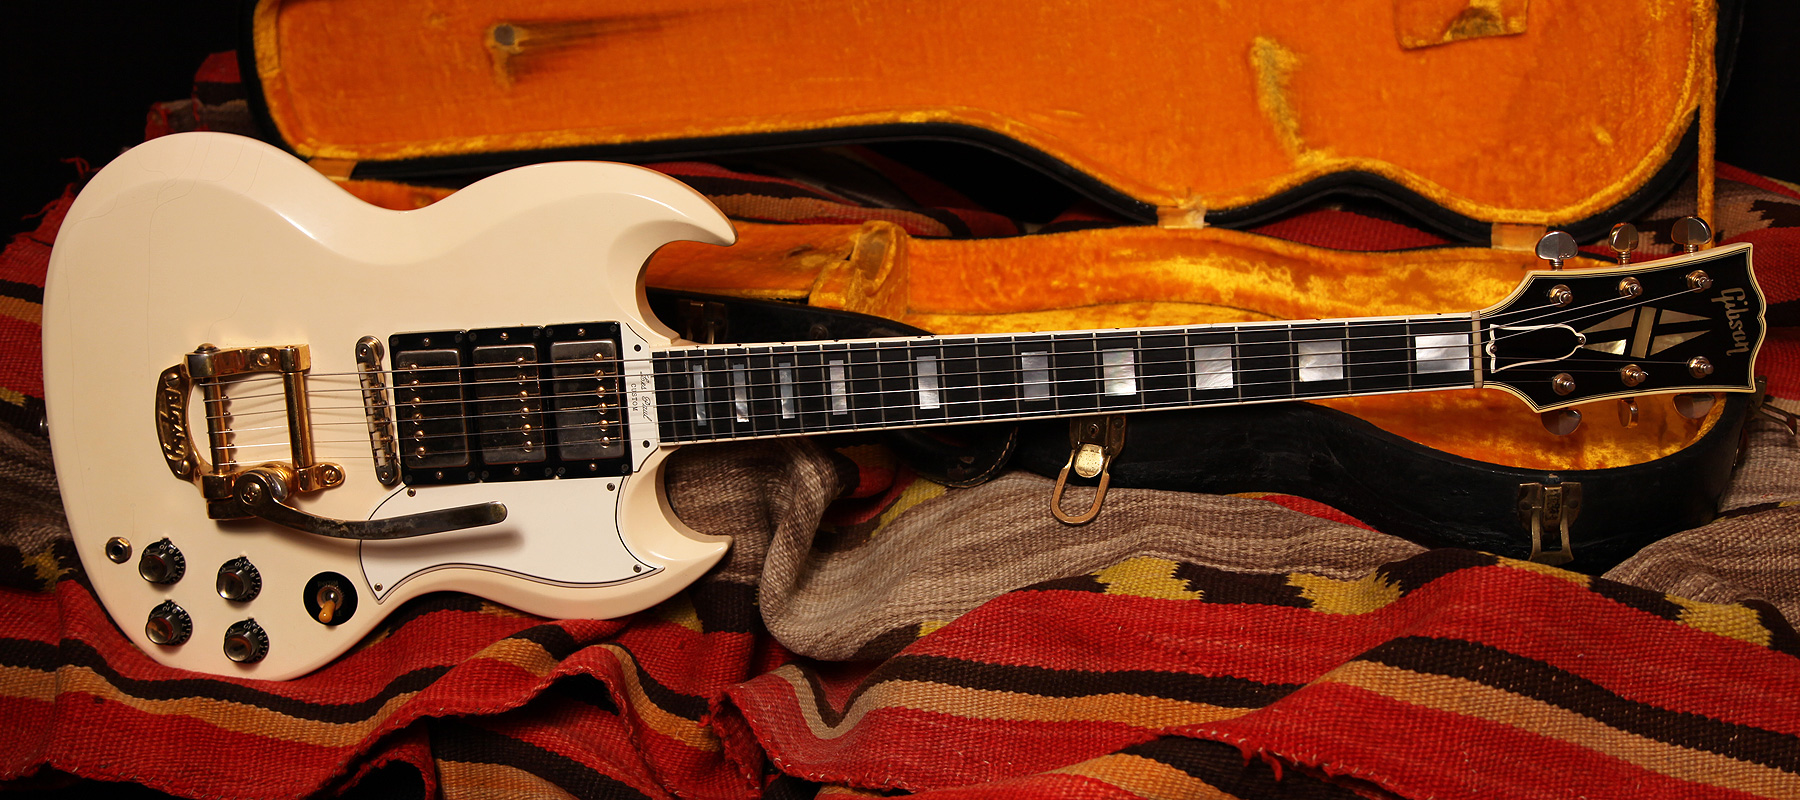 1962 gibson sg les paul custom rumble seat music. Black Bedroom Furniture Sets. Home Design Ideas